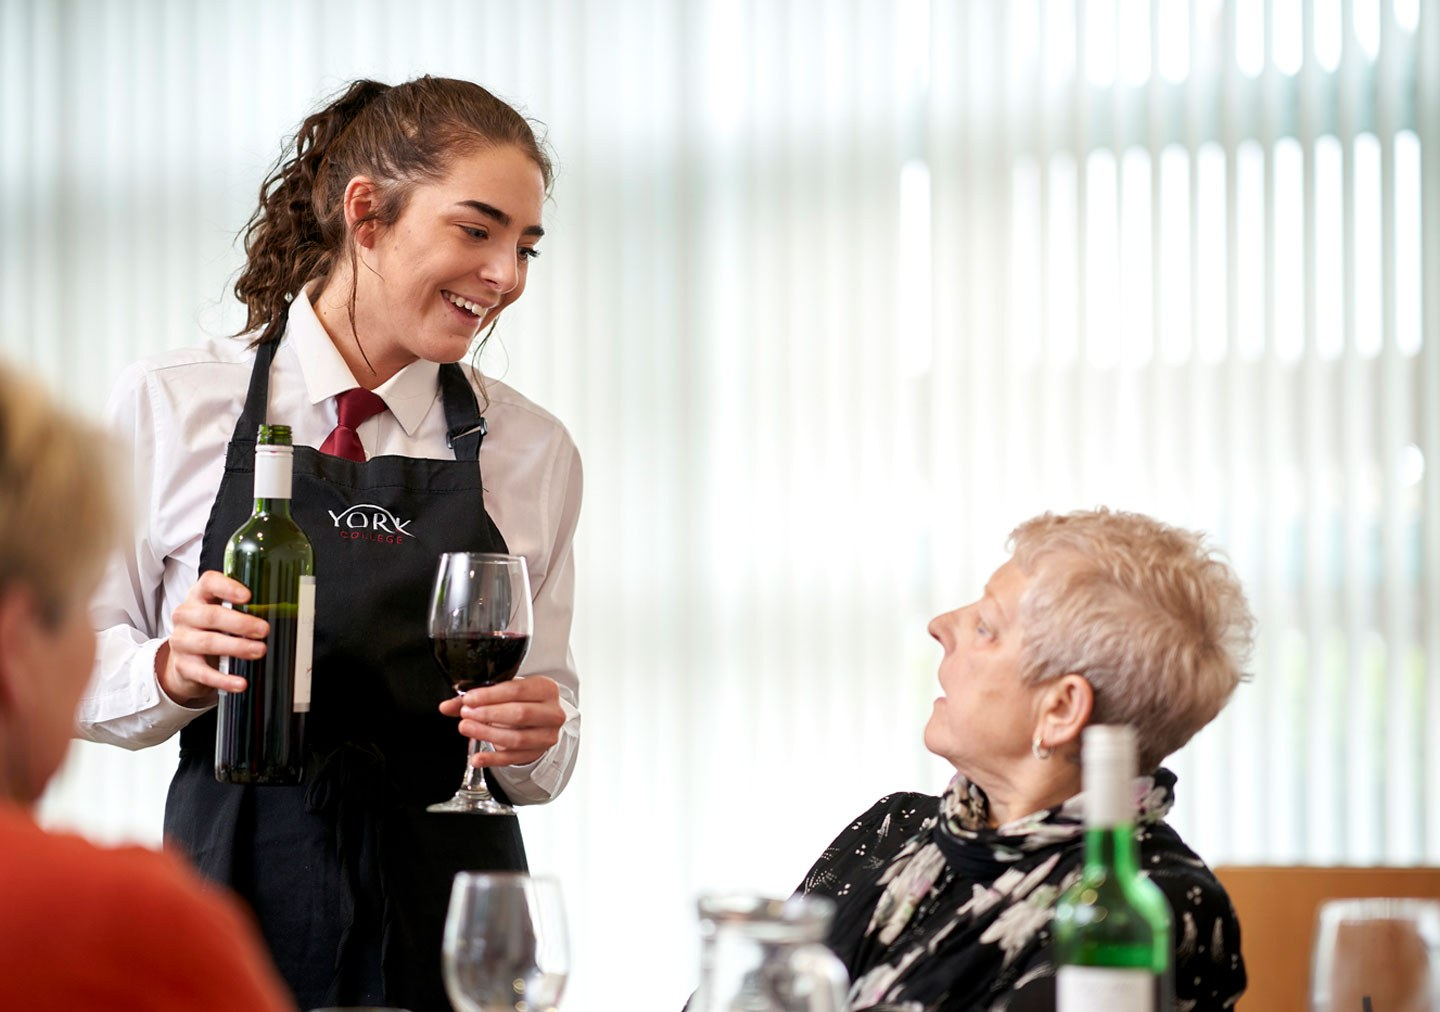 Hospitality student serving wine to a customer in Ashfields Restaurant